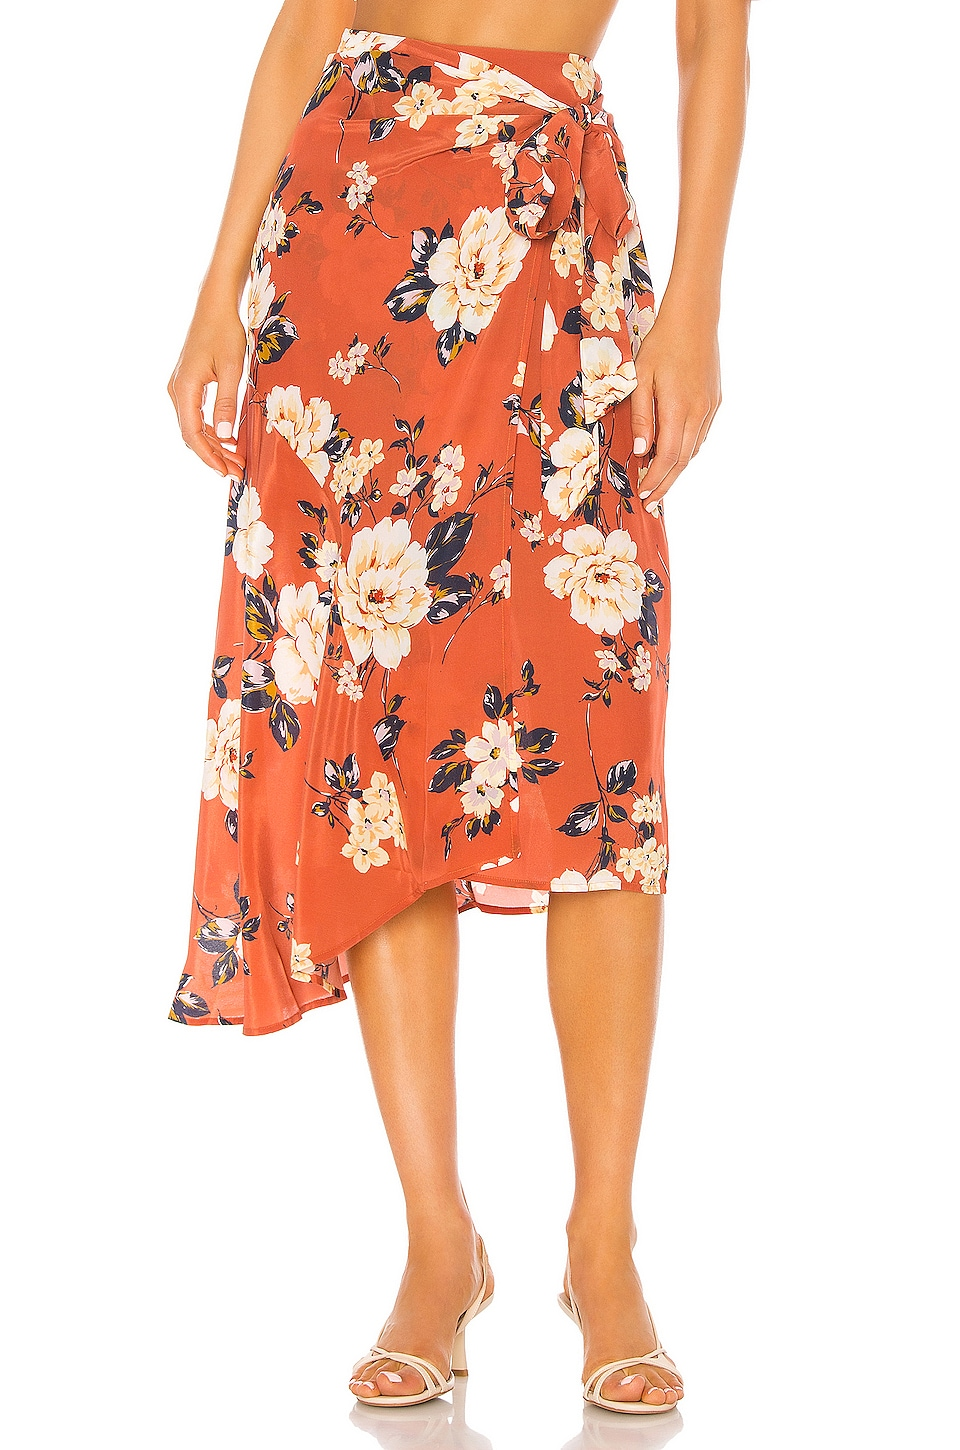 Yumi Kim Live It Up Skirt in Honey Rose Rust